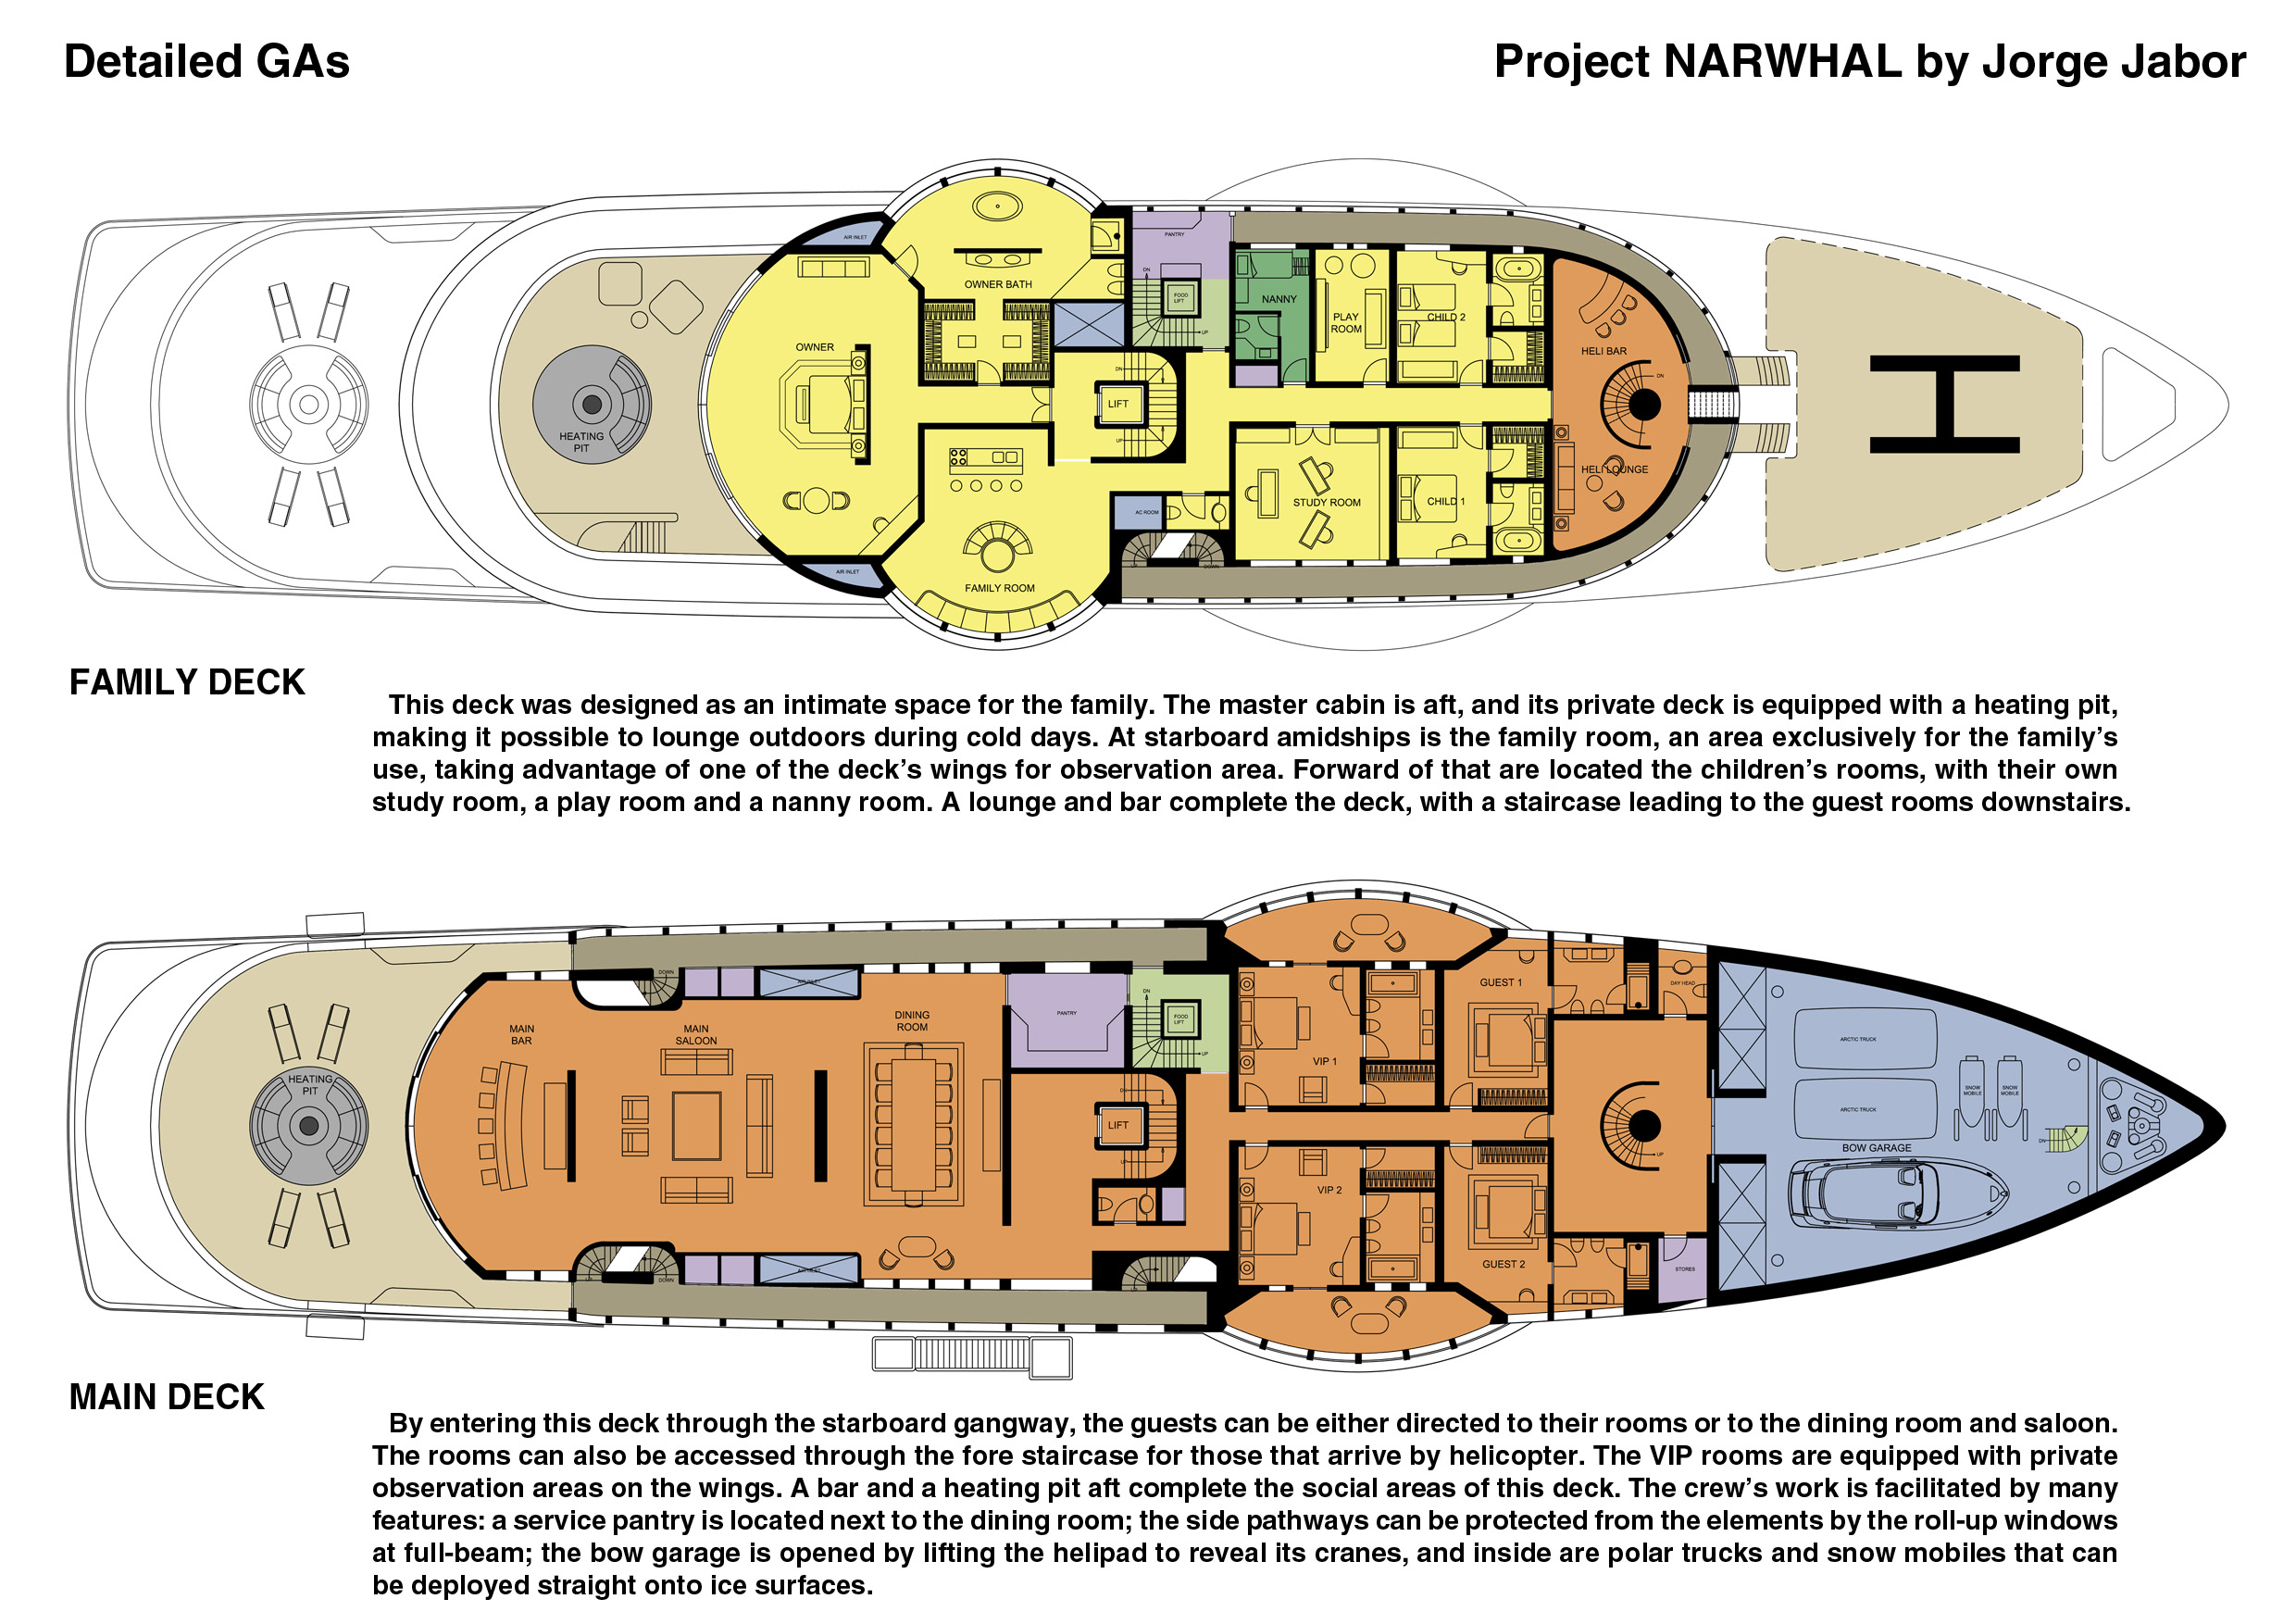 125m megayacht Narwhal concept - Family and Main Decks